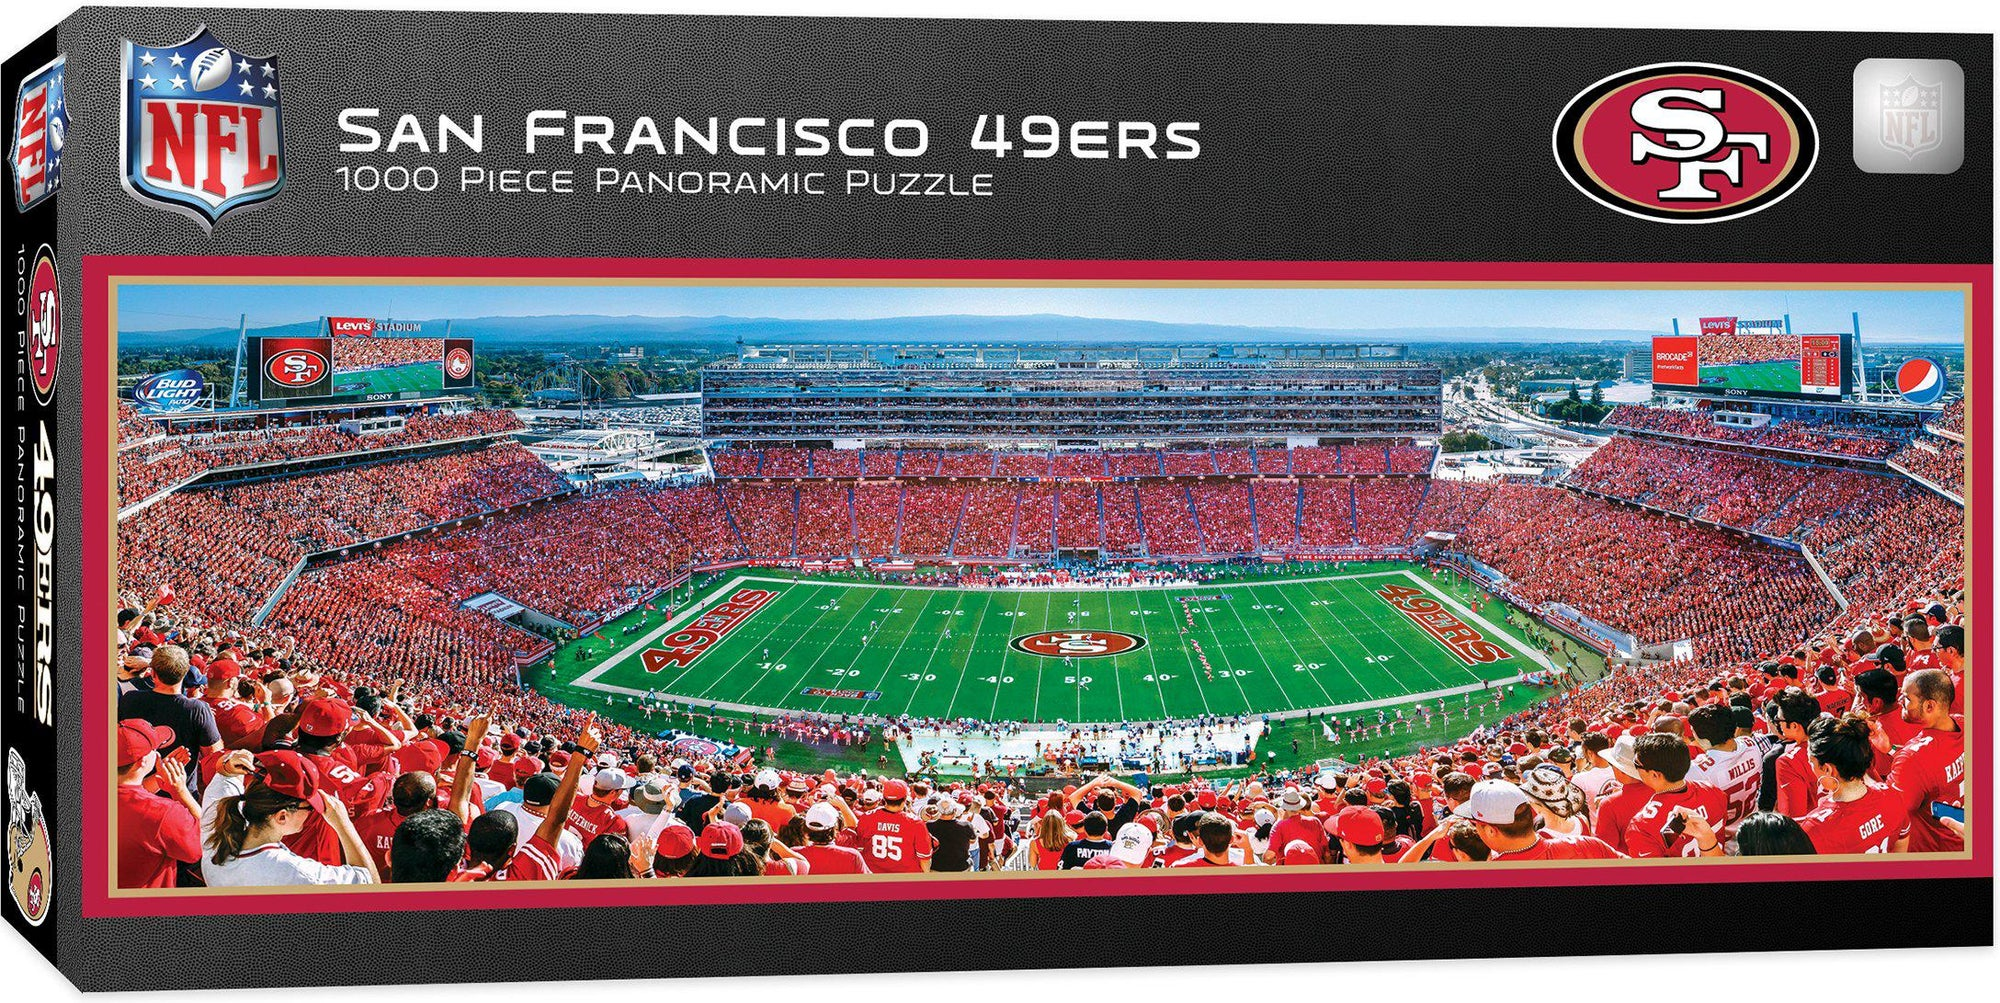 San Francisco 49ers 1,000 Piece Panoramic Puzzle-Puzzle-MasterPieces Puzzle Company-Top Notch Gift Shop